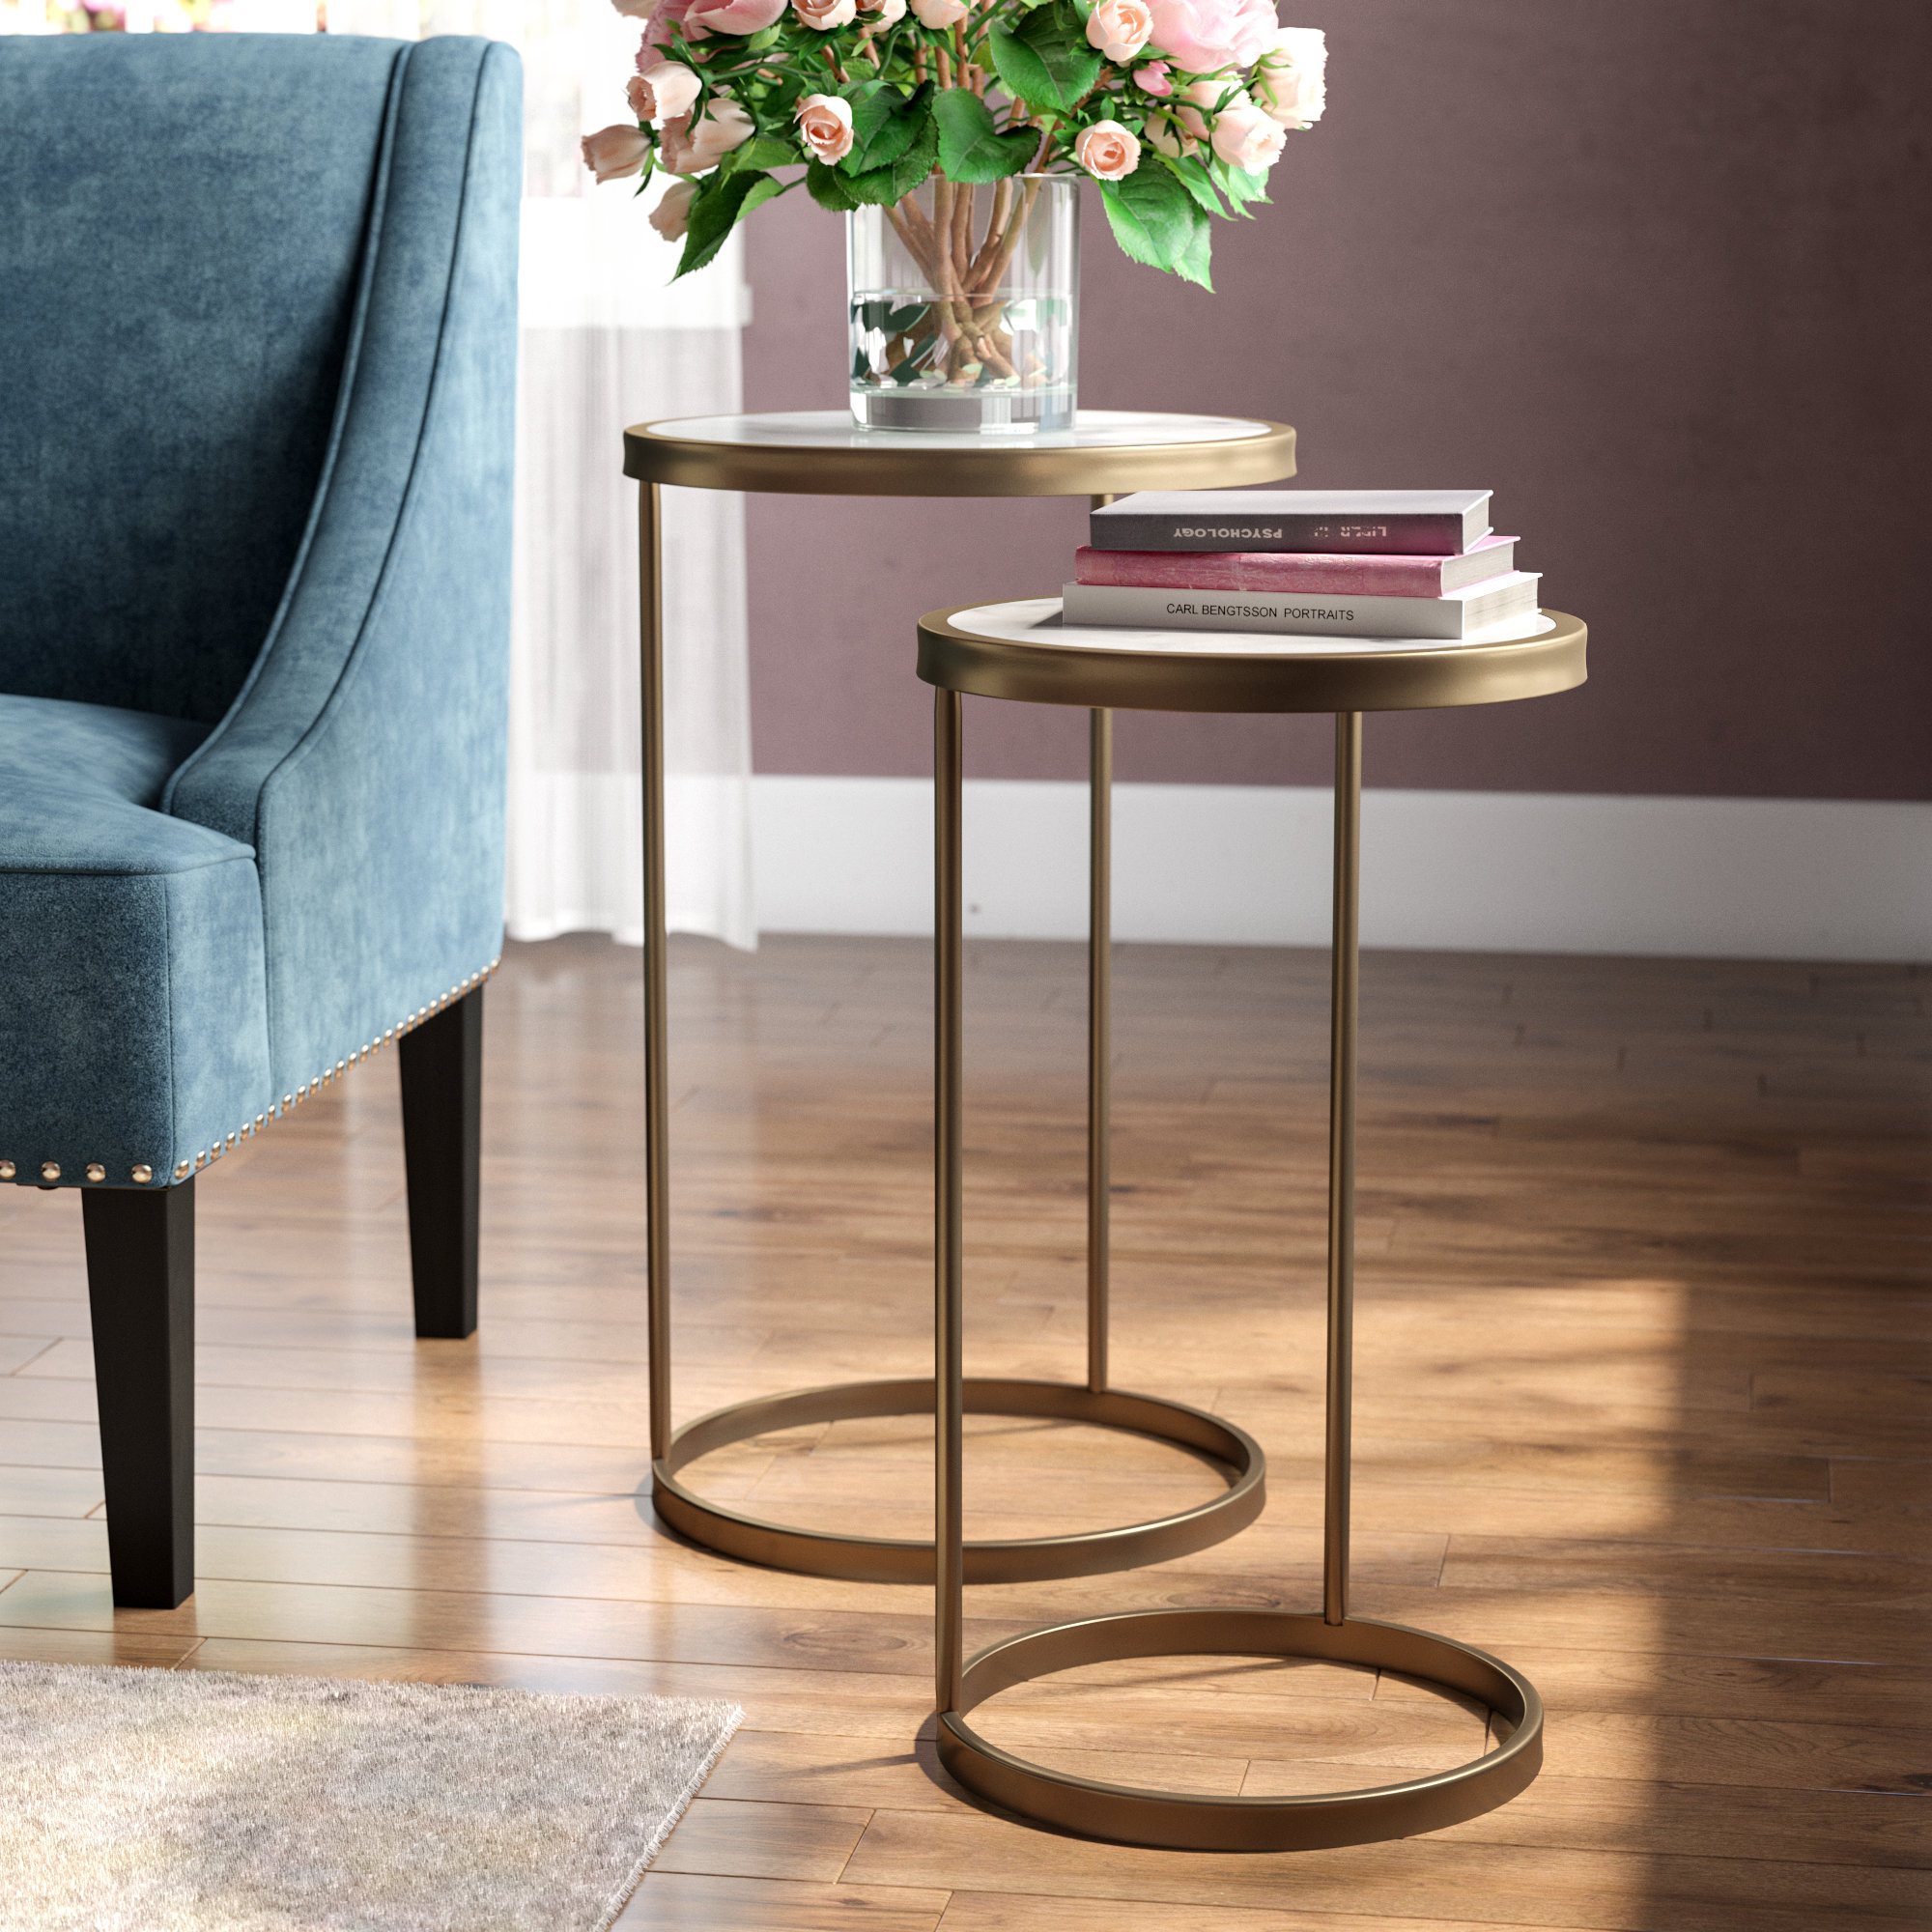 C Tables You'll Love | Wayfair throughout Mix Leather Imprint Metal Frame Console Tables (Image 3 of 30)